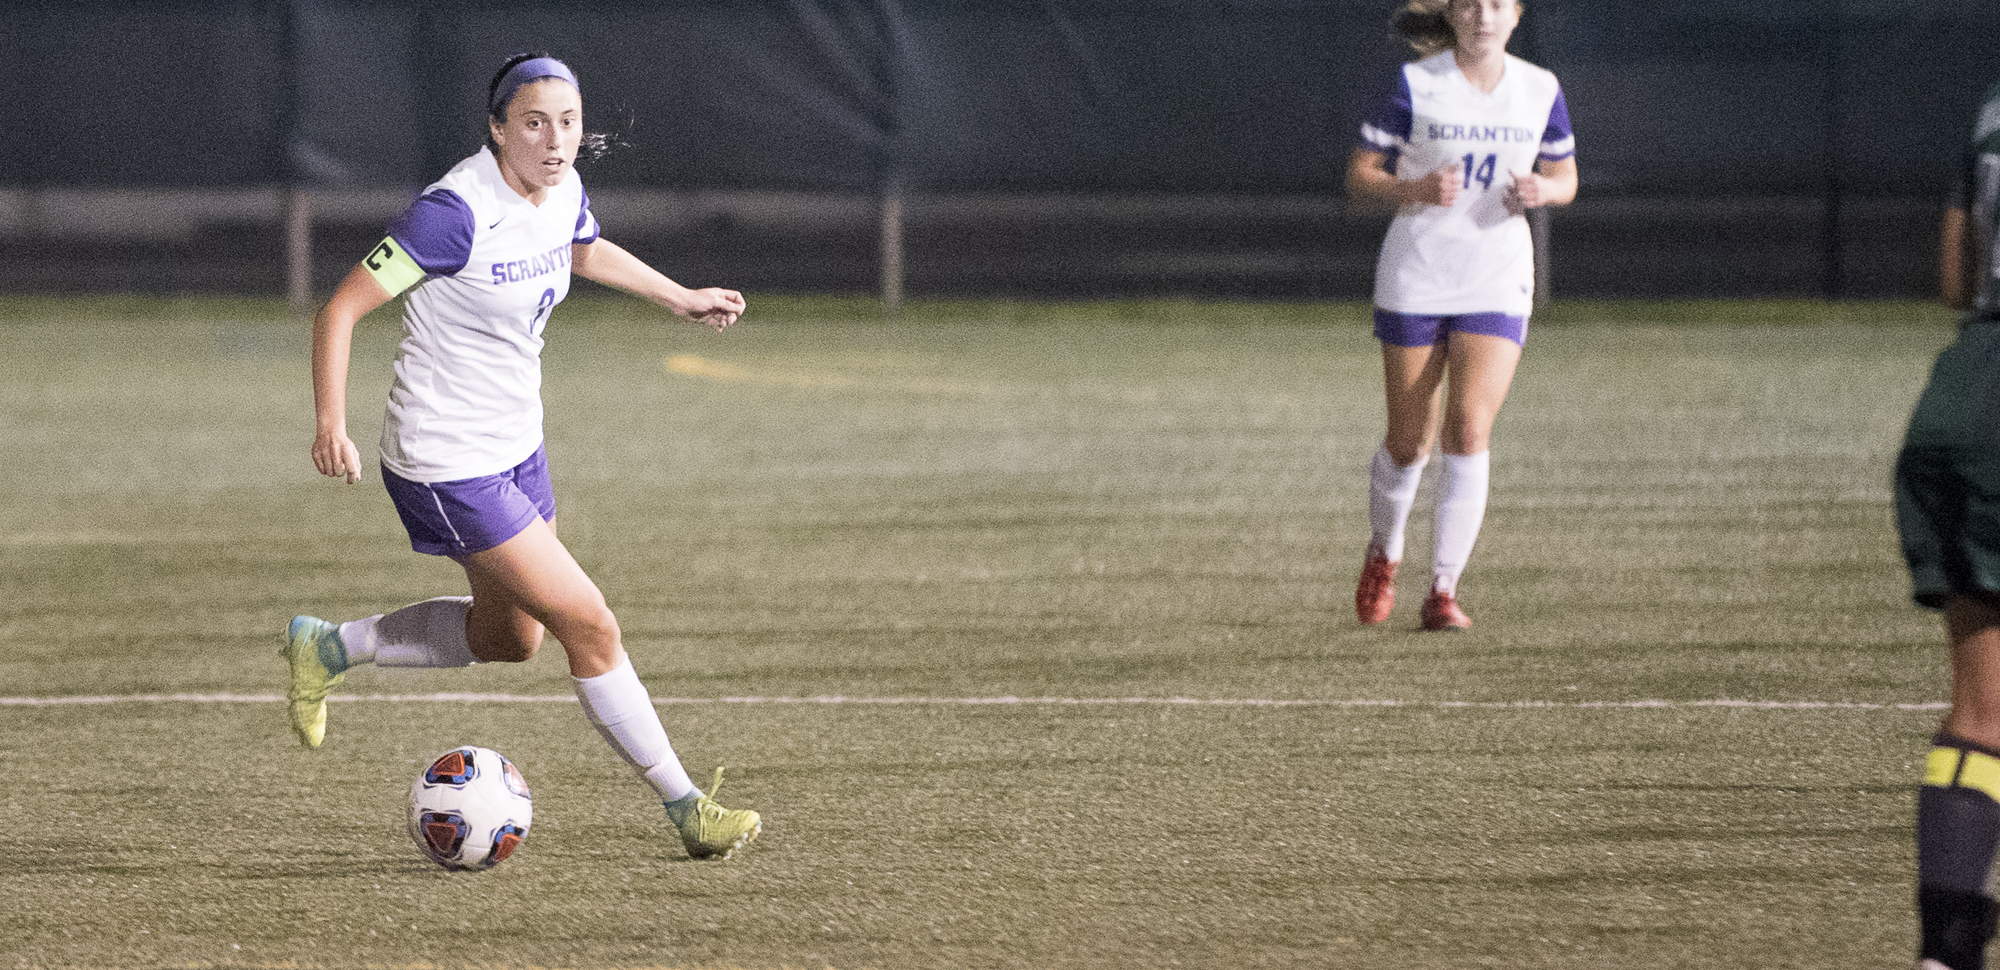 Junior Erica Licari converted a penalty kick to lift the Royals past Moravian on Saturday.